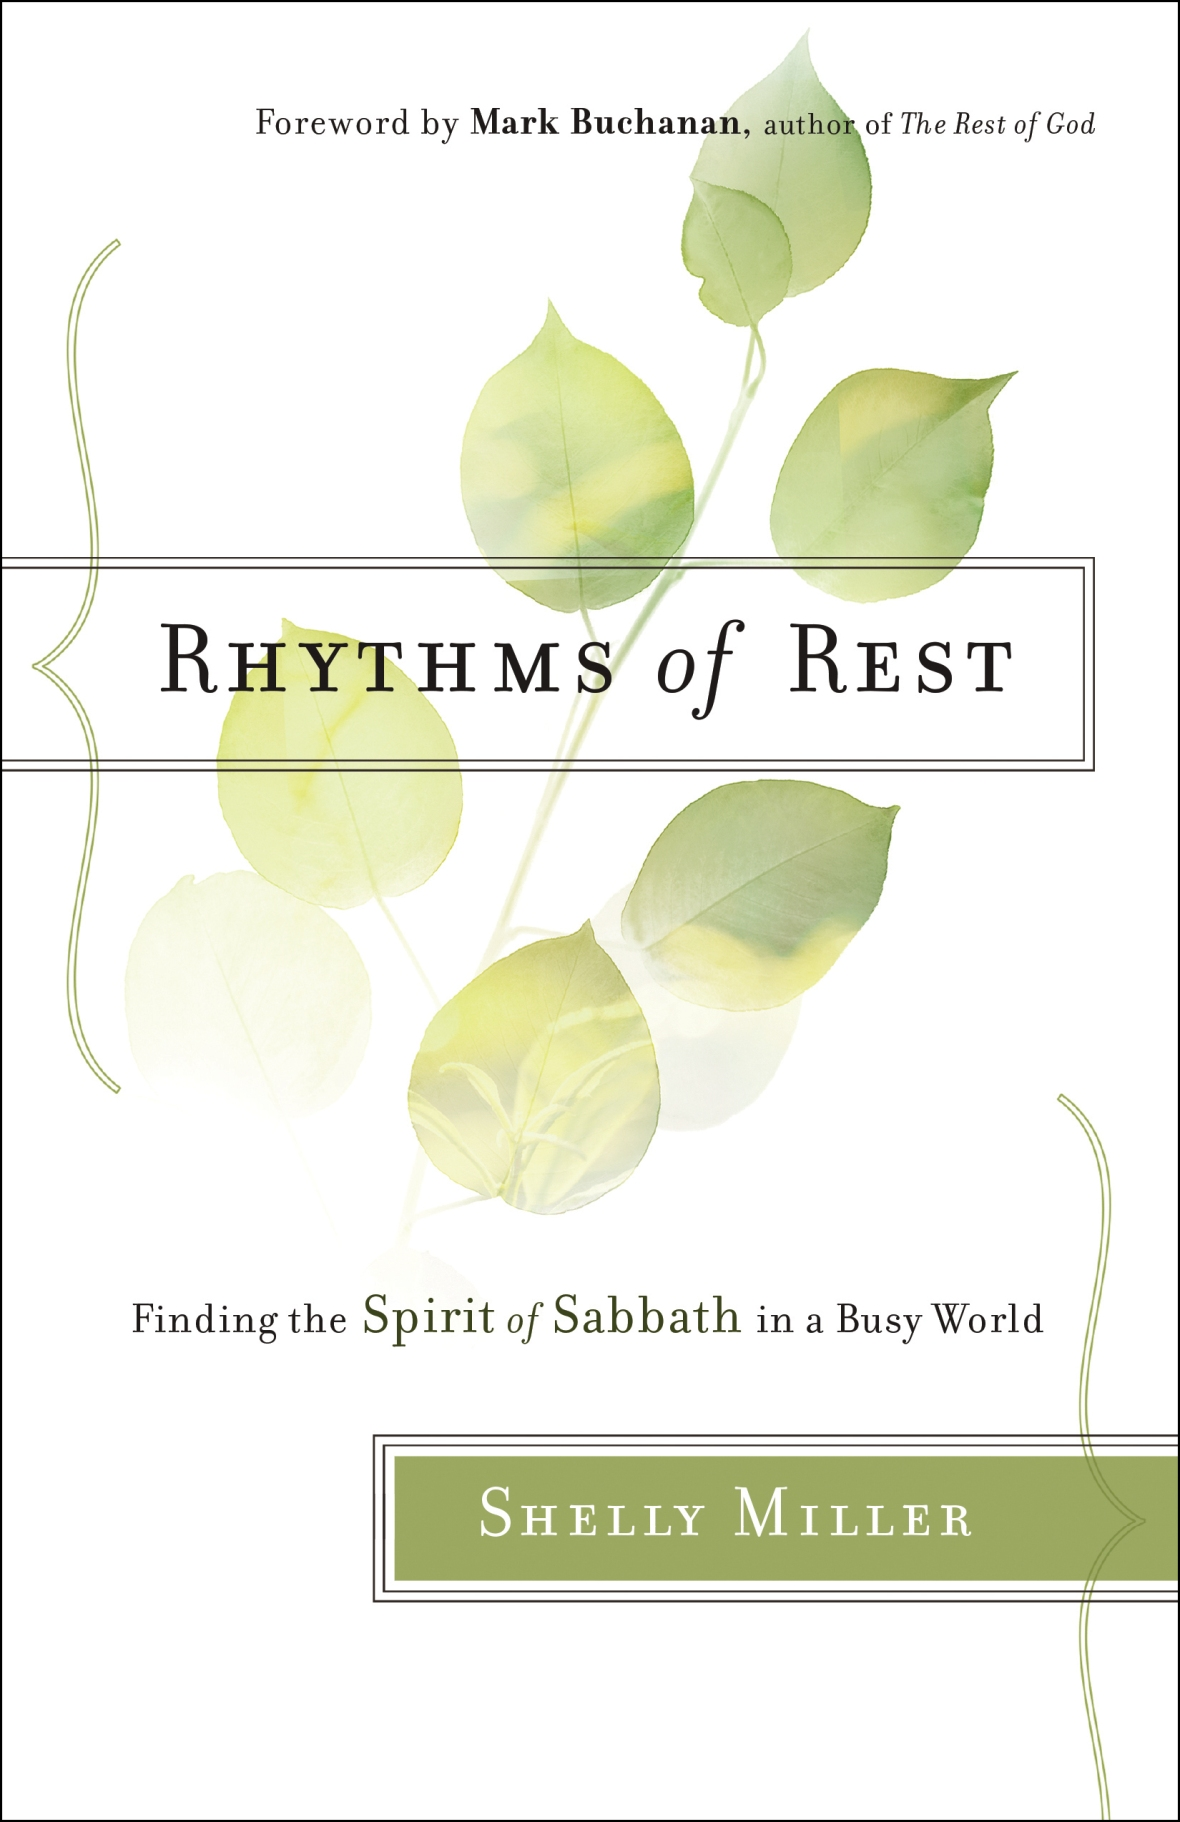 Do you know how to make rest a reality? For Christians, Sabbath rest is what God calls us to and what He wants for us... but it's hard. This book is a great read on Sabbath rest--it is practical, encouraging, and challenging all in one! I highly recommendit! Rhythms of Rest by Shelly Miller